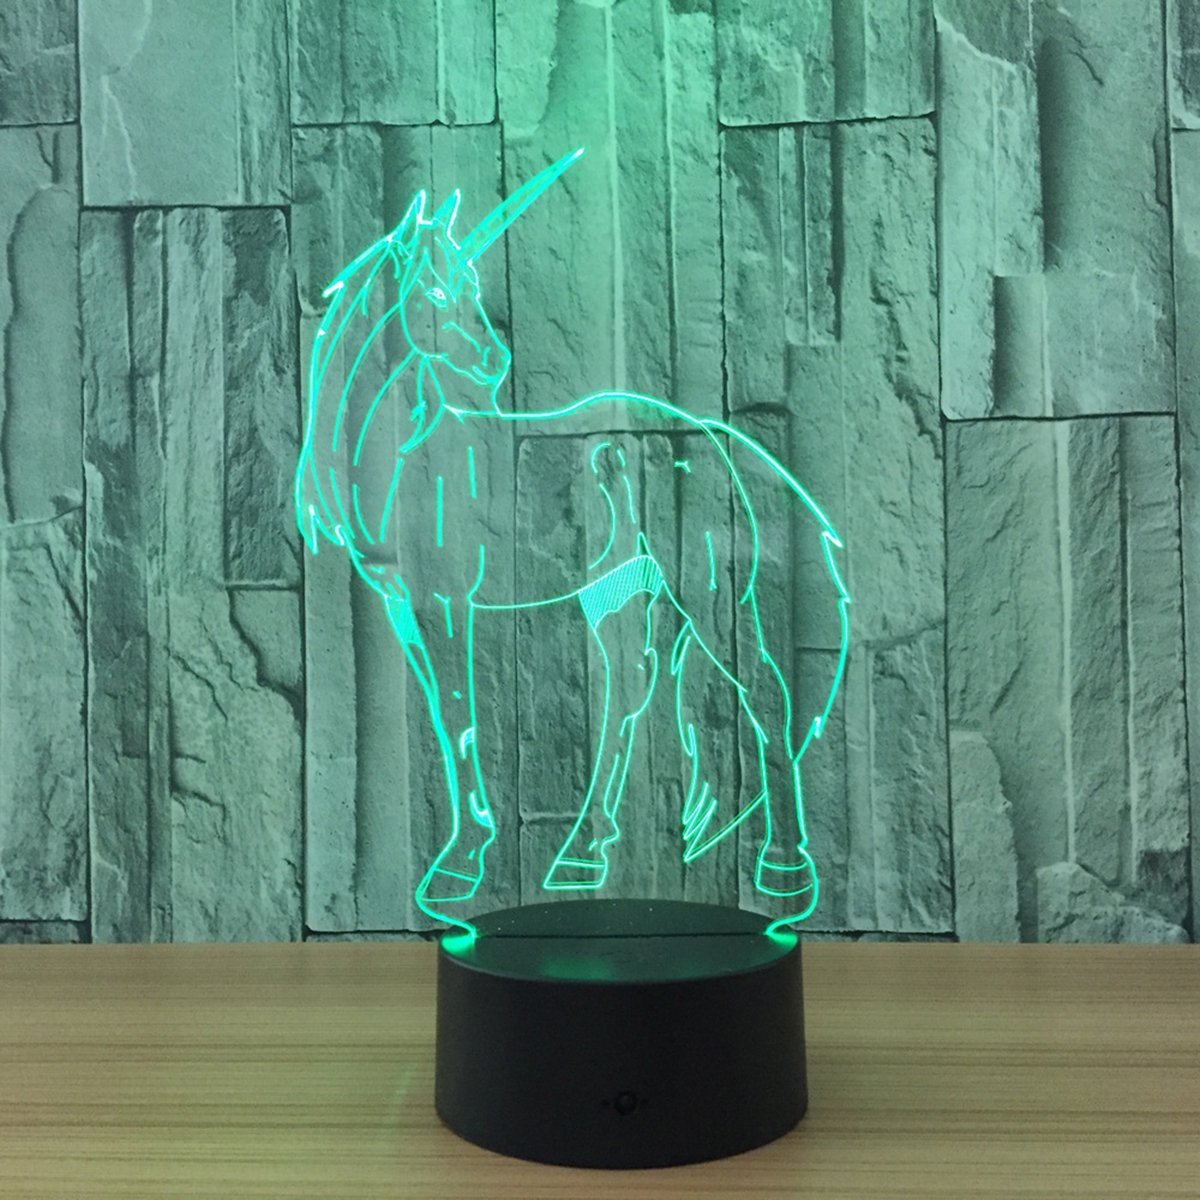 Novelty Unicorn 3D Illusion Lamp Led Night Light with 7 Colors Flashing & Touch Switch USB Powered Bedroom Desk Lamp for Kids Gifts Home Decoration by Atglus (Image #4)